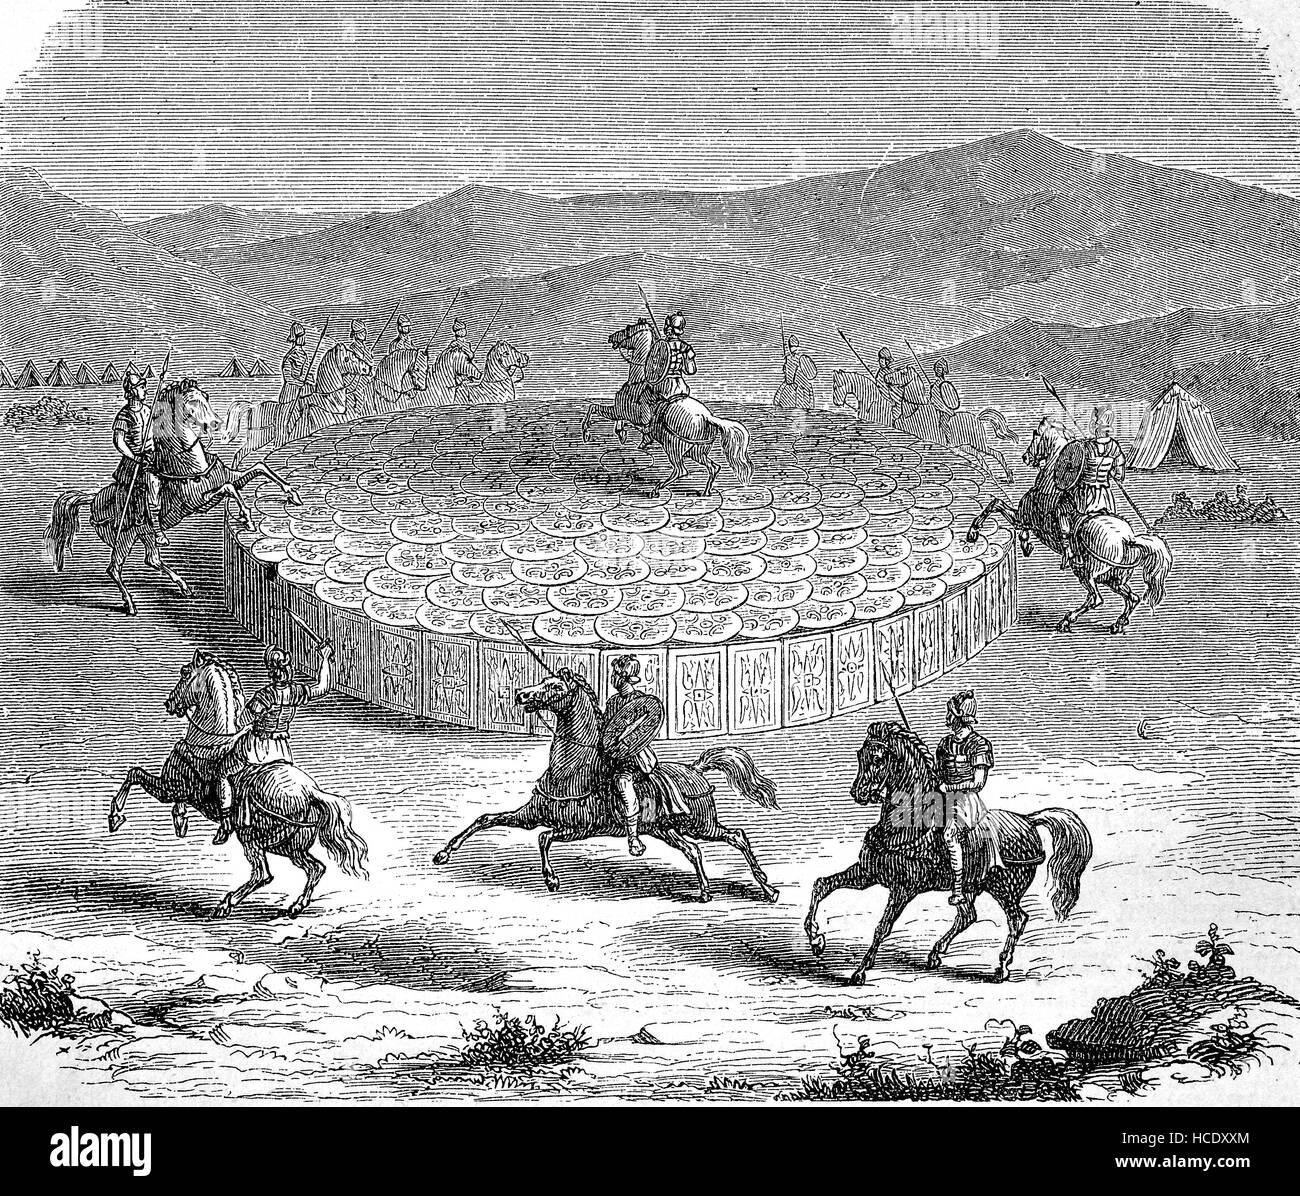 In Ancient Roman warfare, the testudo or tortoise formation was a formation used commonly by the Roman Legions during - Stock Image